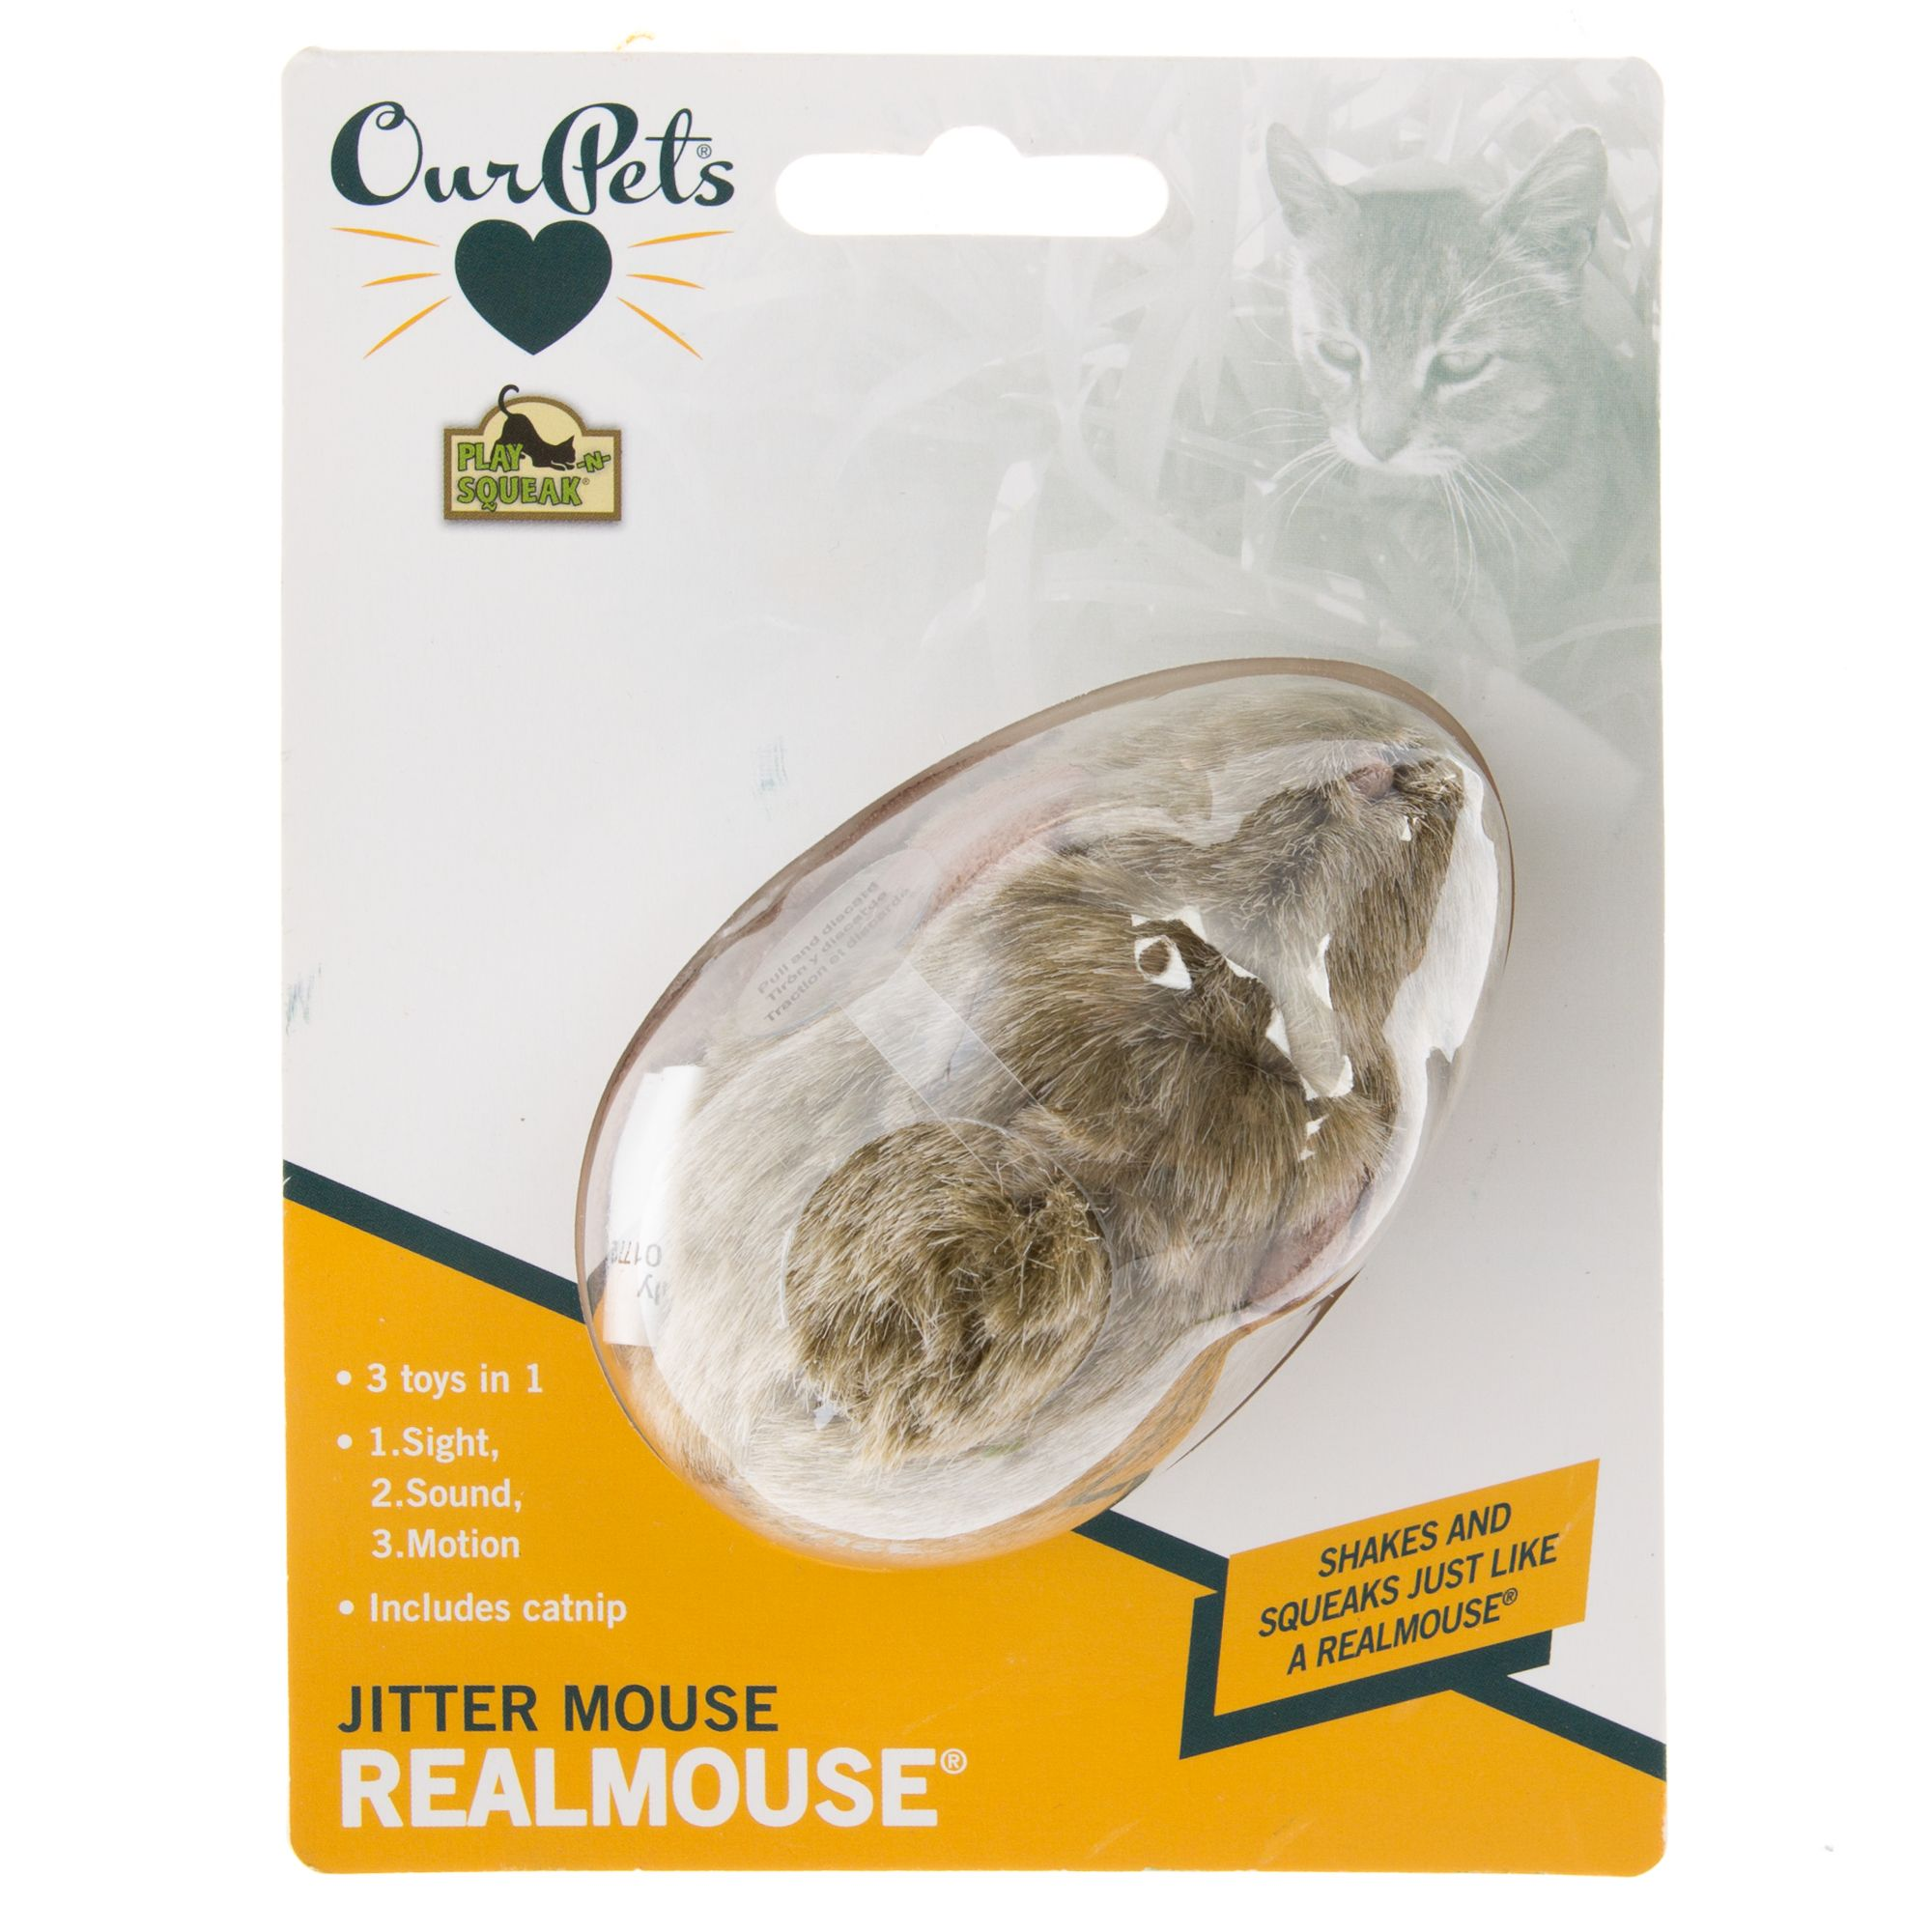 OurPets Jitter Mouse Cat Toy, OurPet's 5257926